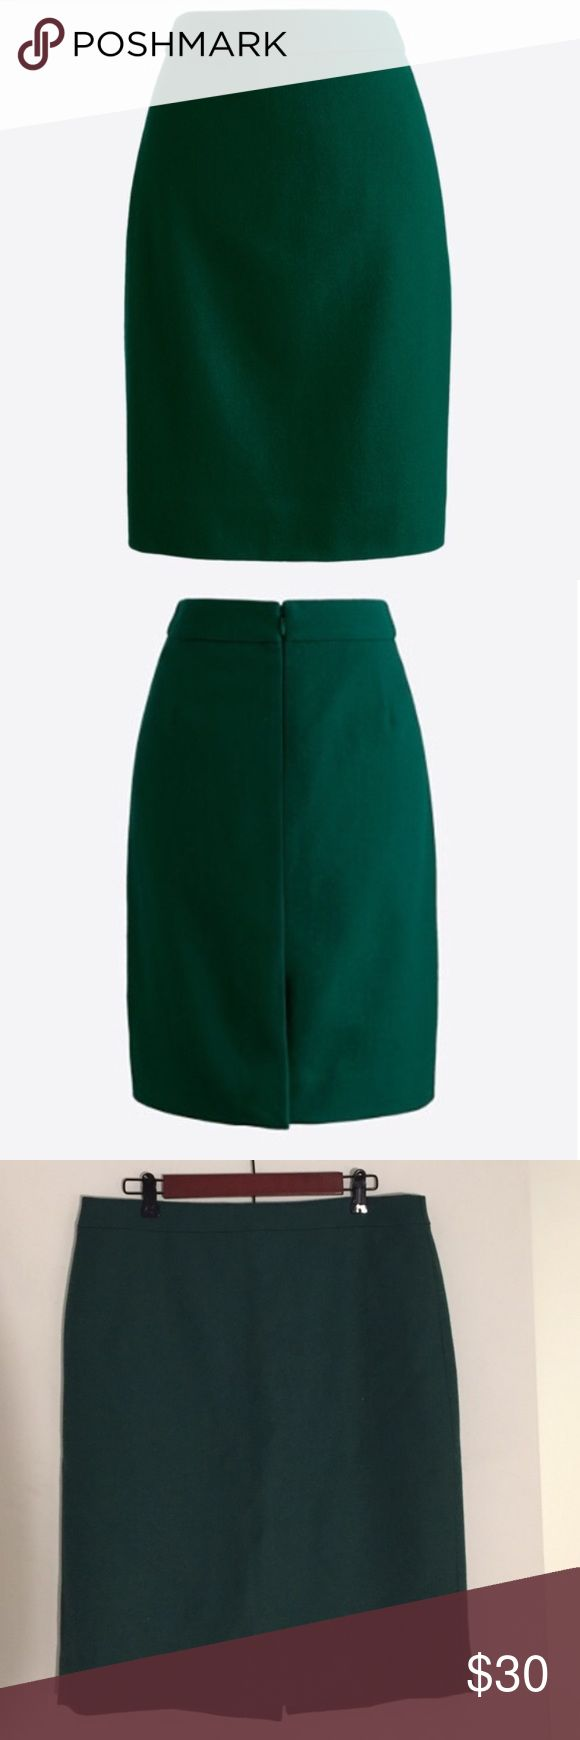 NWOT J Crew green pencil skirt New without tags J Crew green pencil skirt. Knee length with slit in back. Color best captured in stock photo one and two. Perfect for winter and spring Materials: 100% Wool J. Crew Skirts Pencil